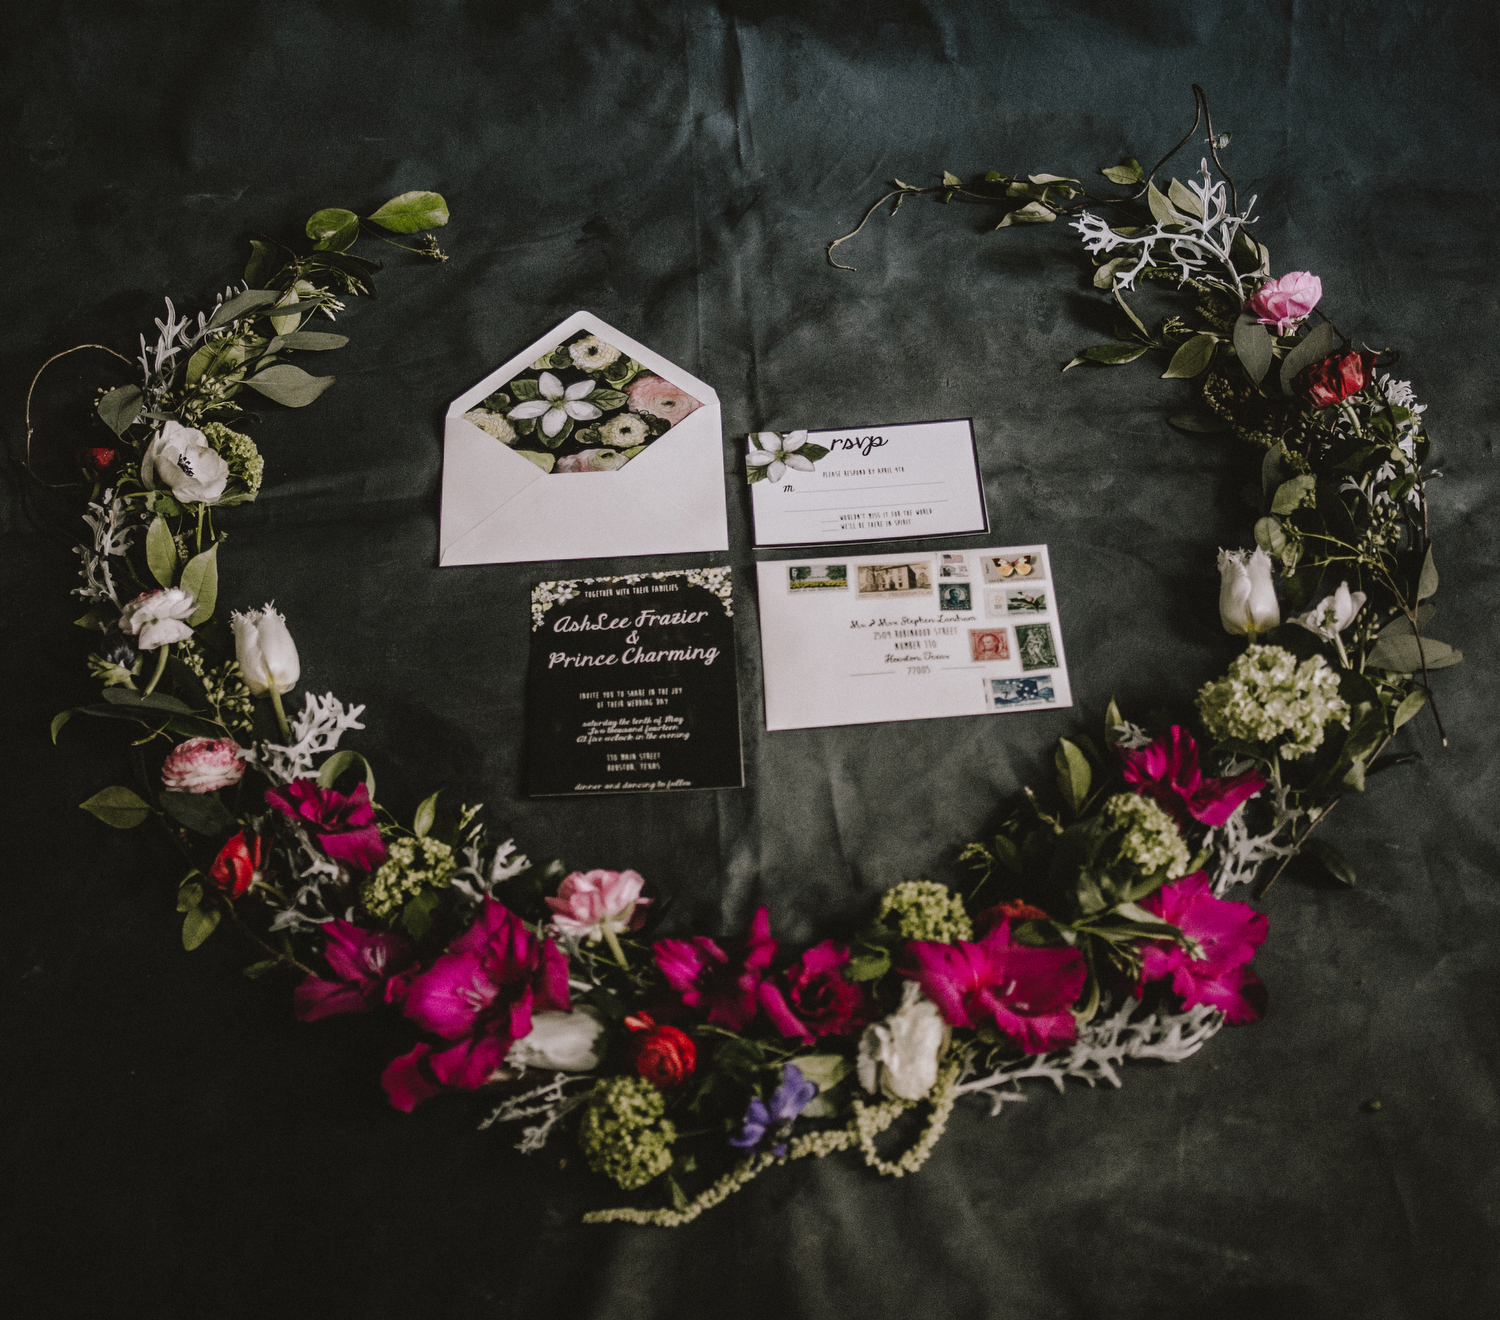 Maxit Flower Design; Dark Flowers Photo Shoot; Featured in Junebug Weddings; Joseph West Photography